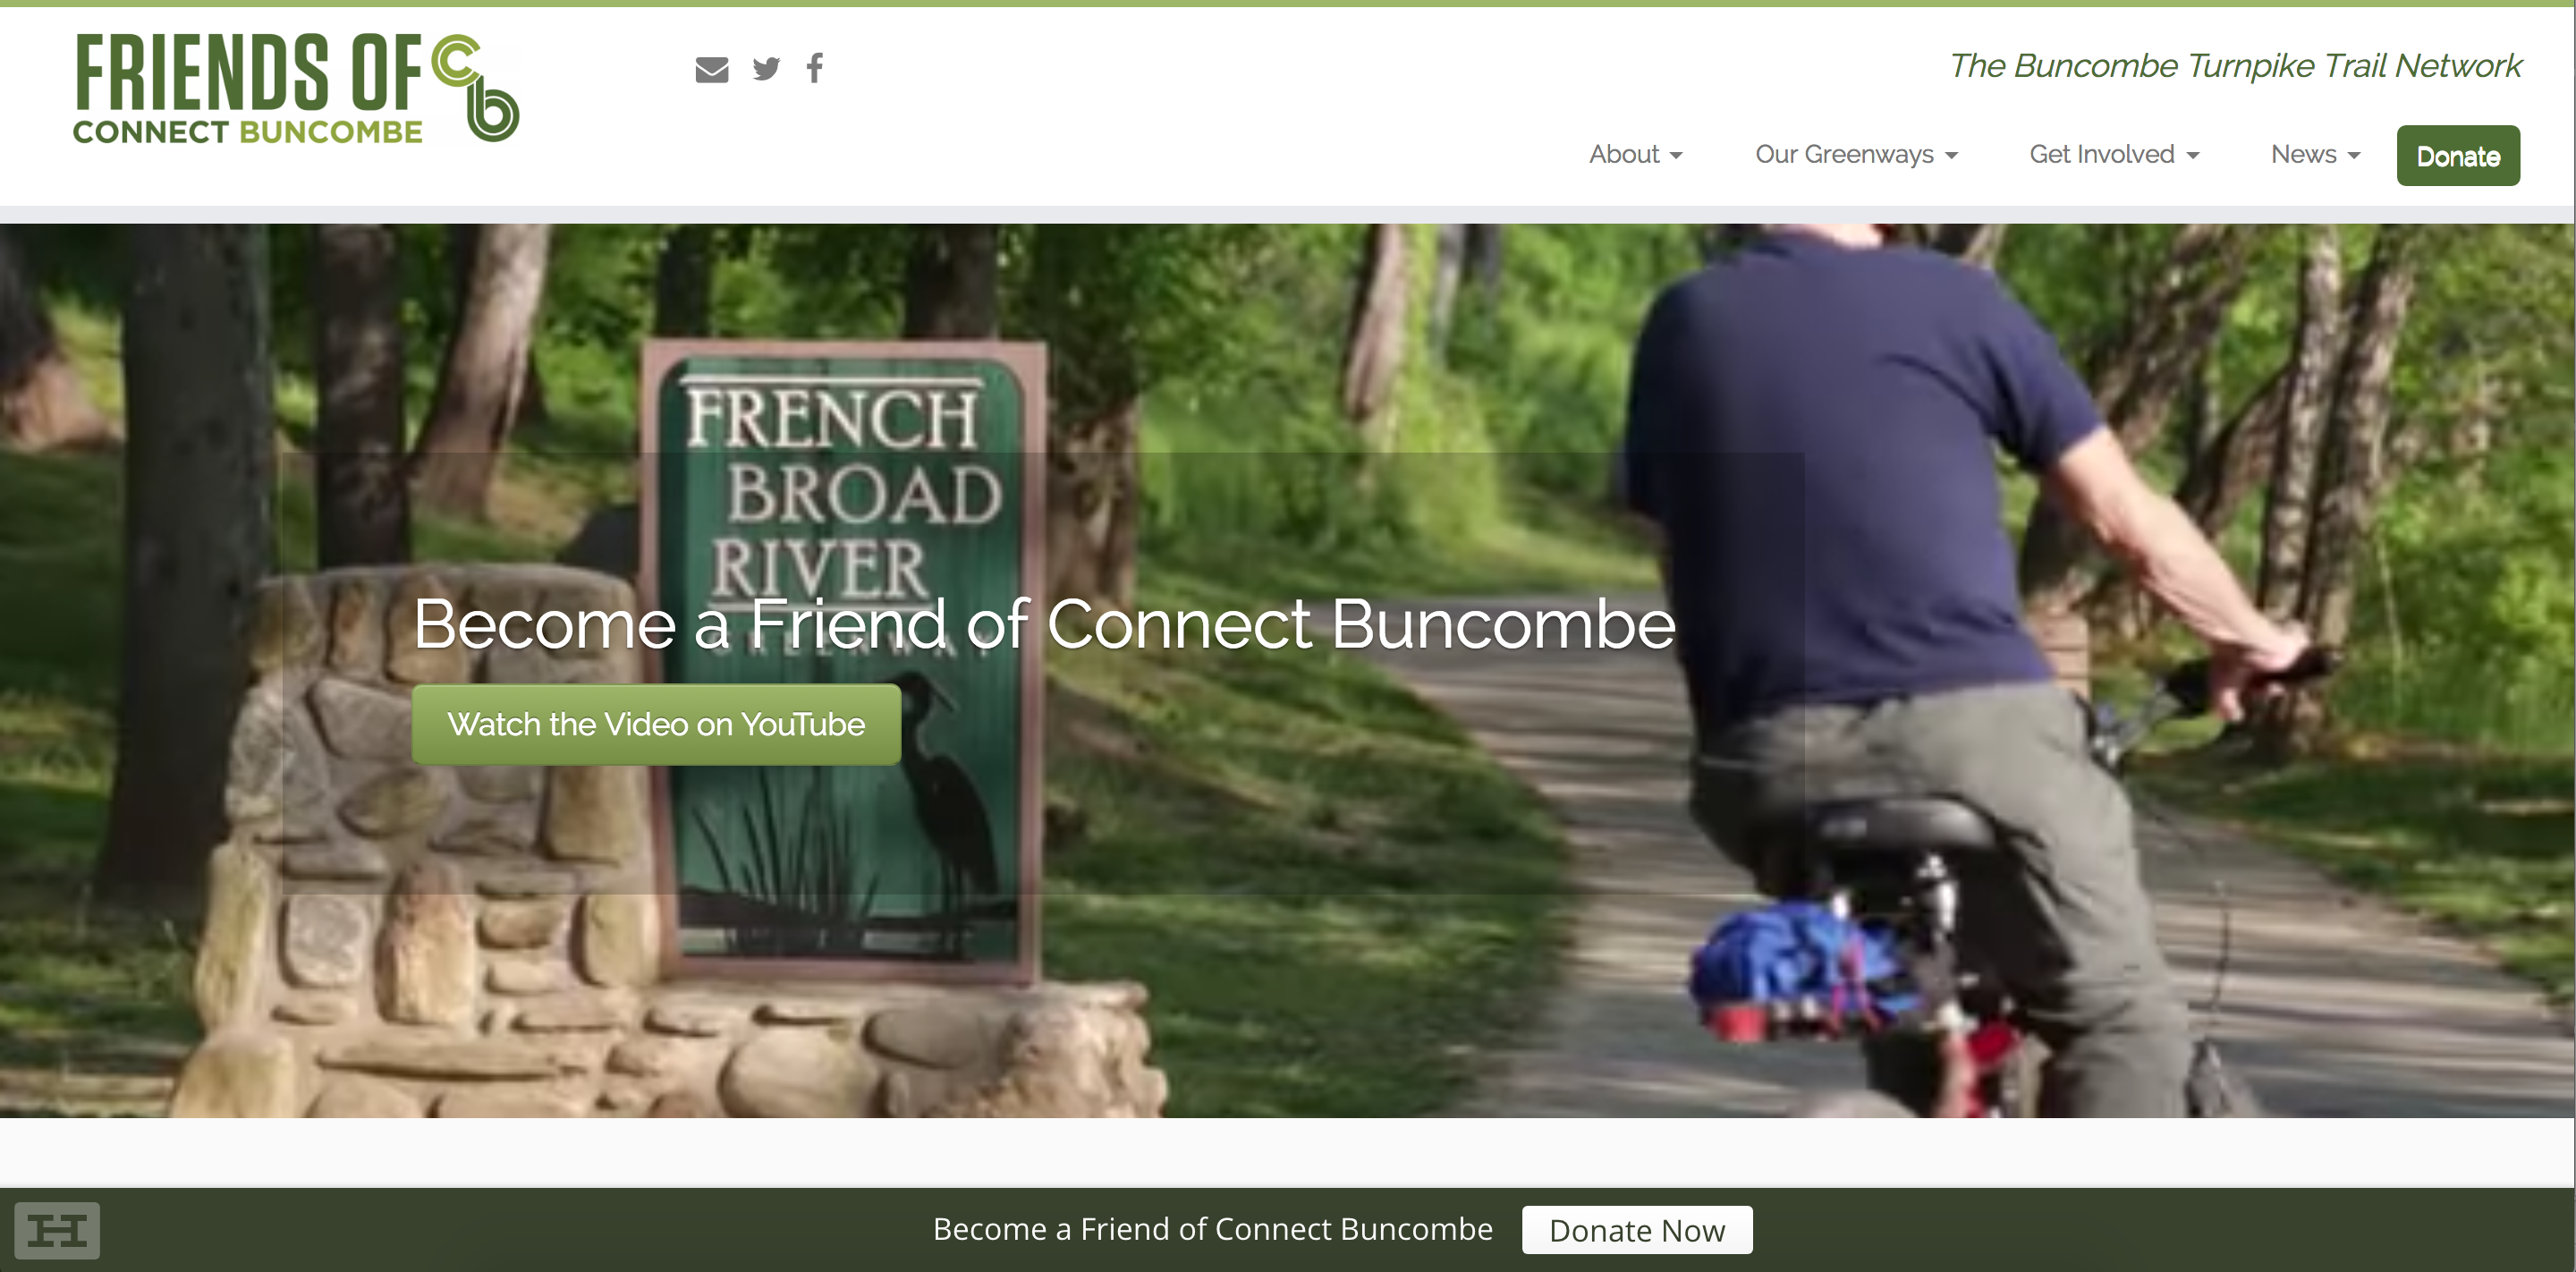 Friends of Connect Buncombe